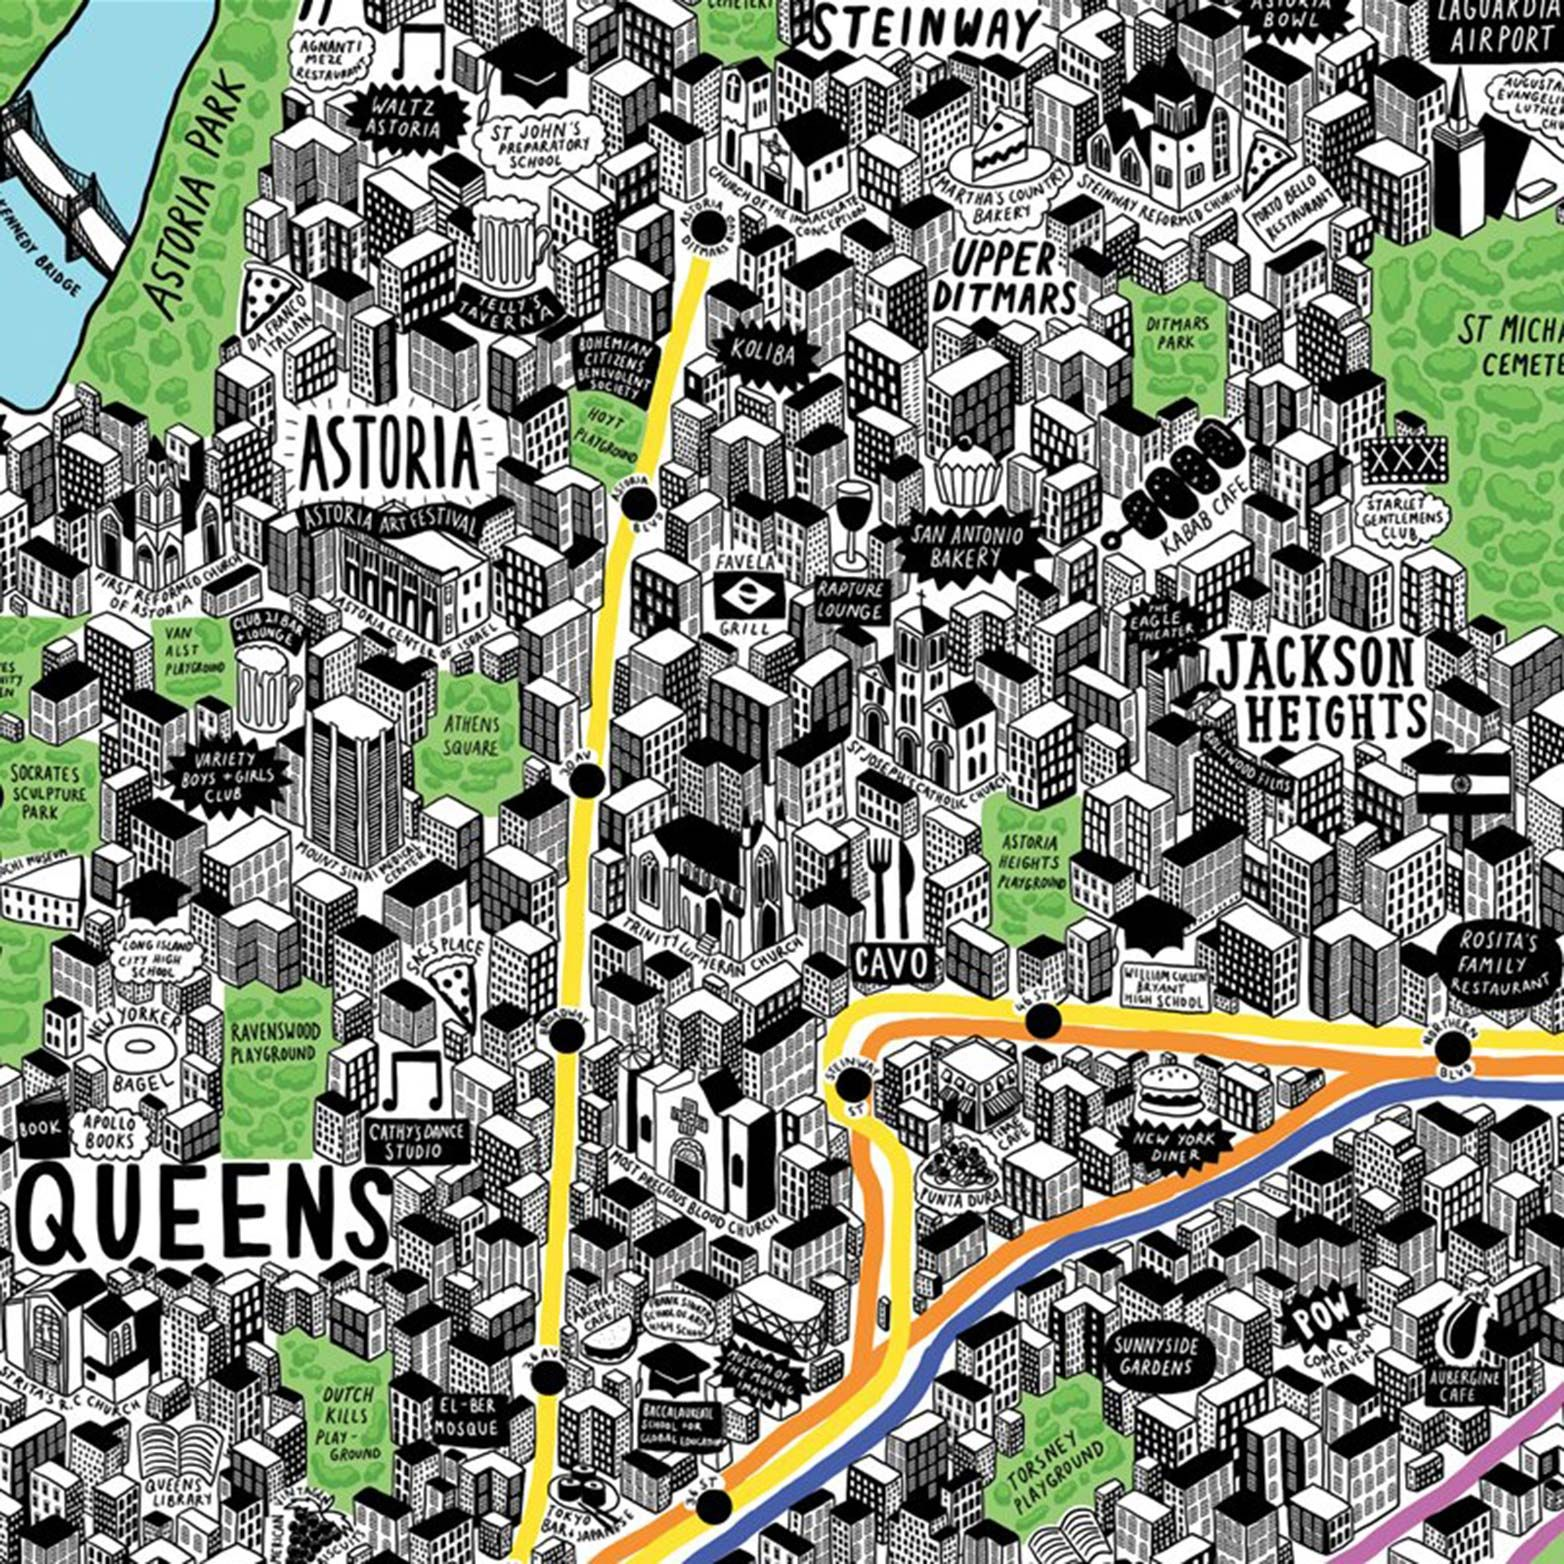 Astoria Nyc Map.New York Mapped By Hand Maps Pinterest Nueva York Mapas And